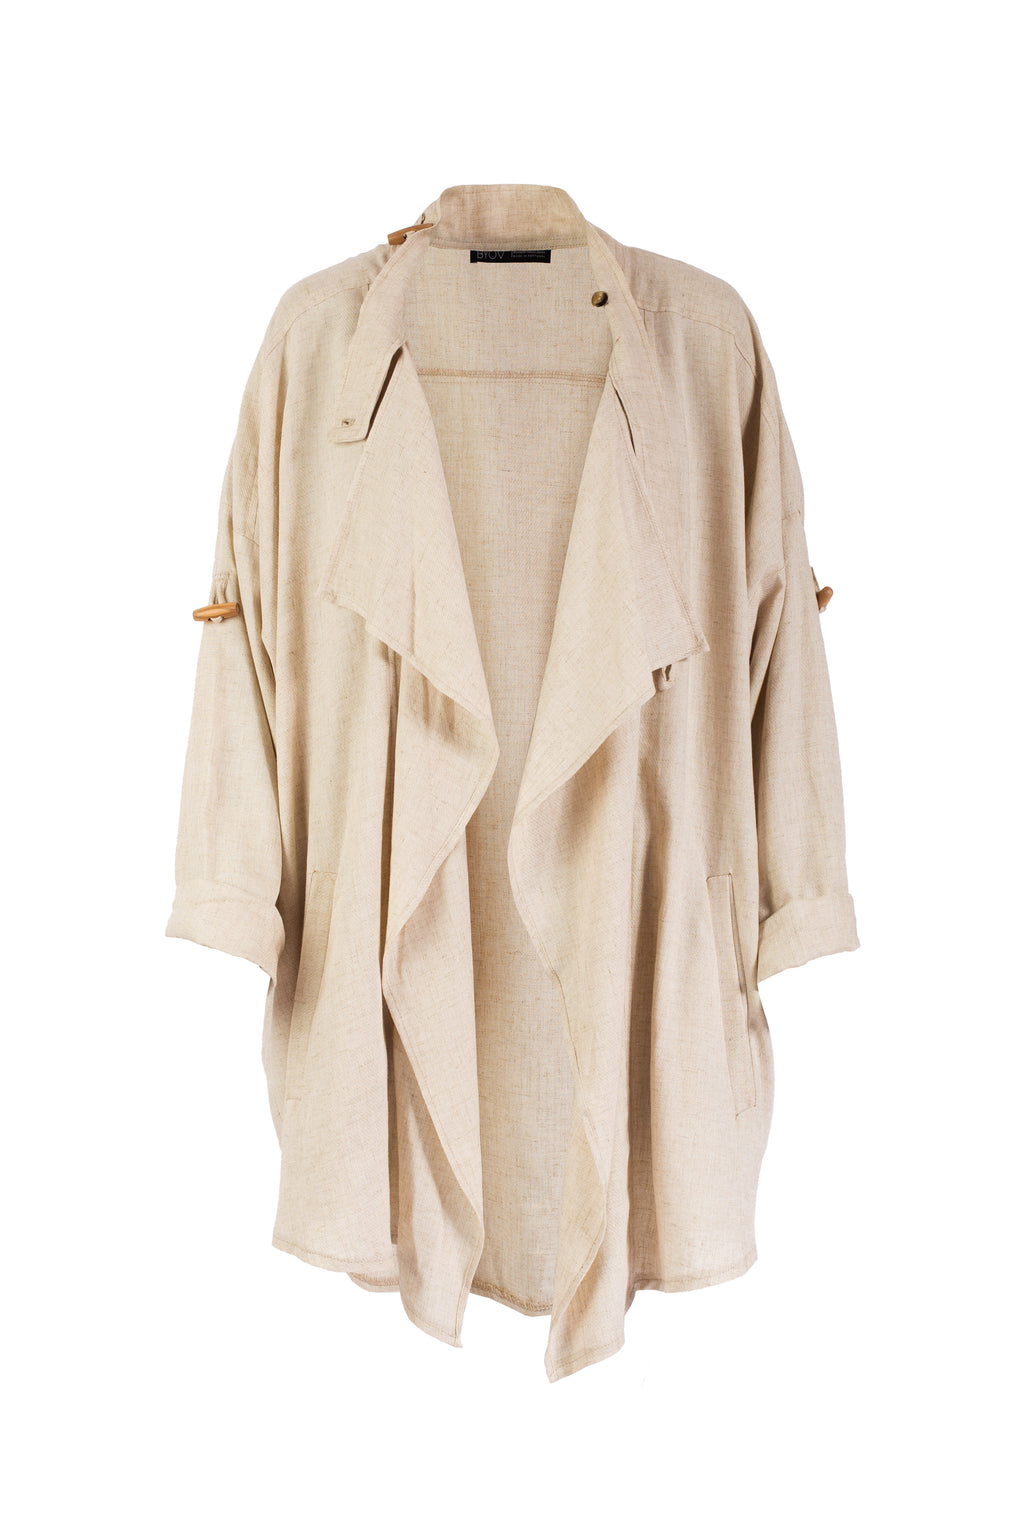 9755 - LOBITO - TRENCH CREAM -BYOU by Patricia Gouveia